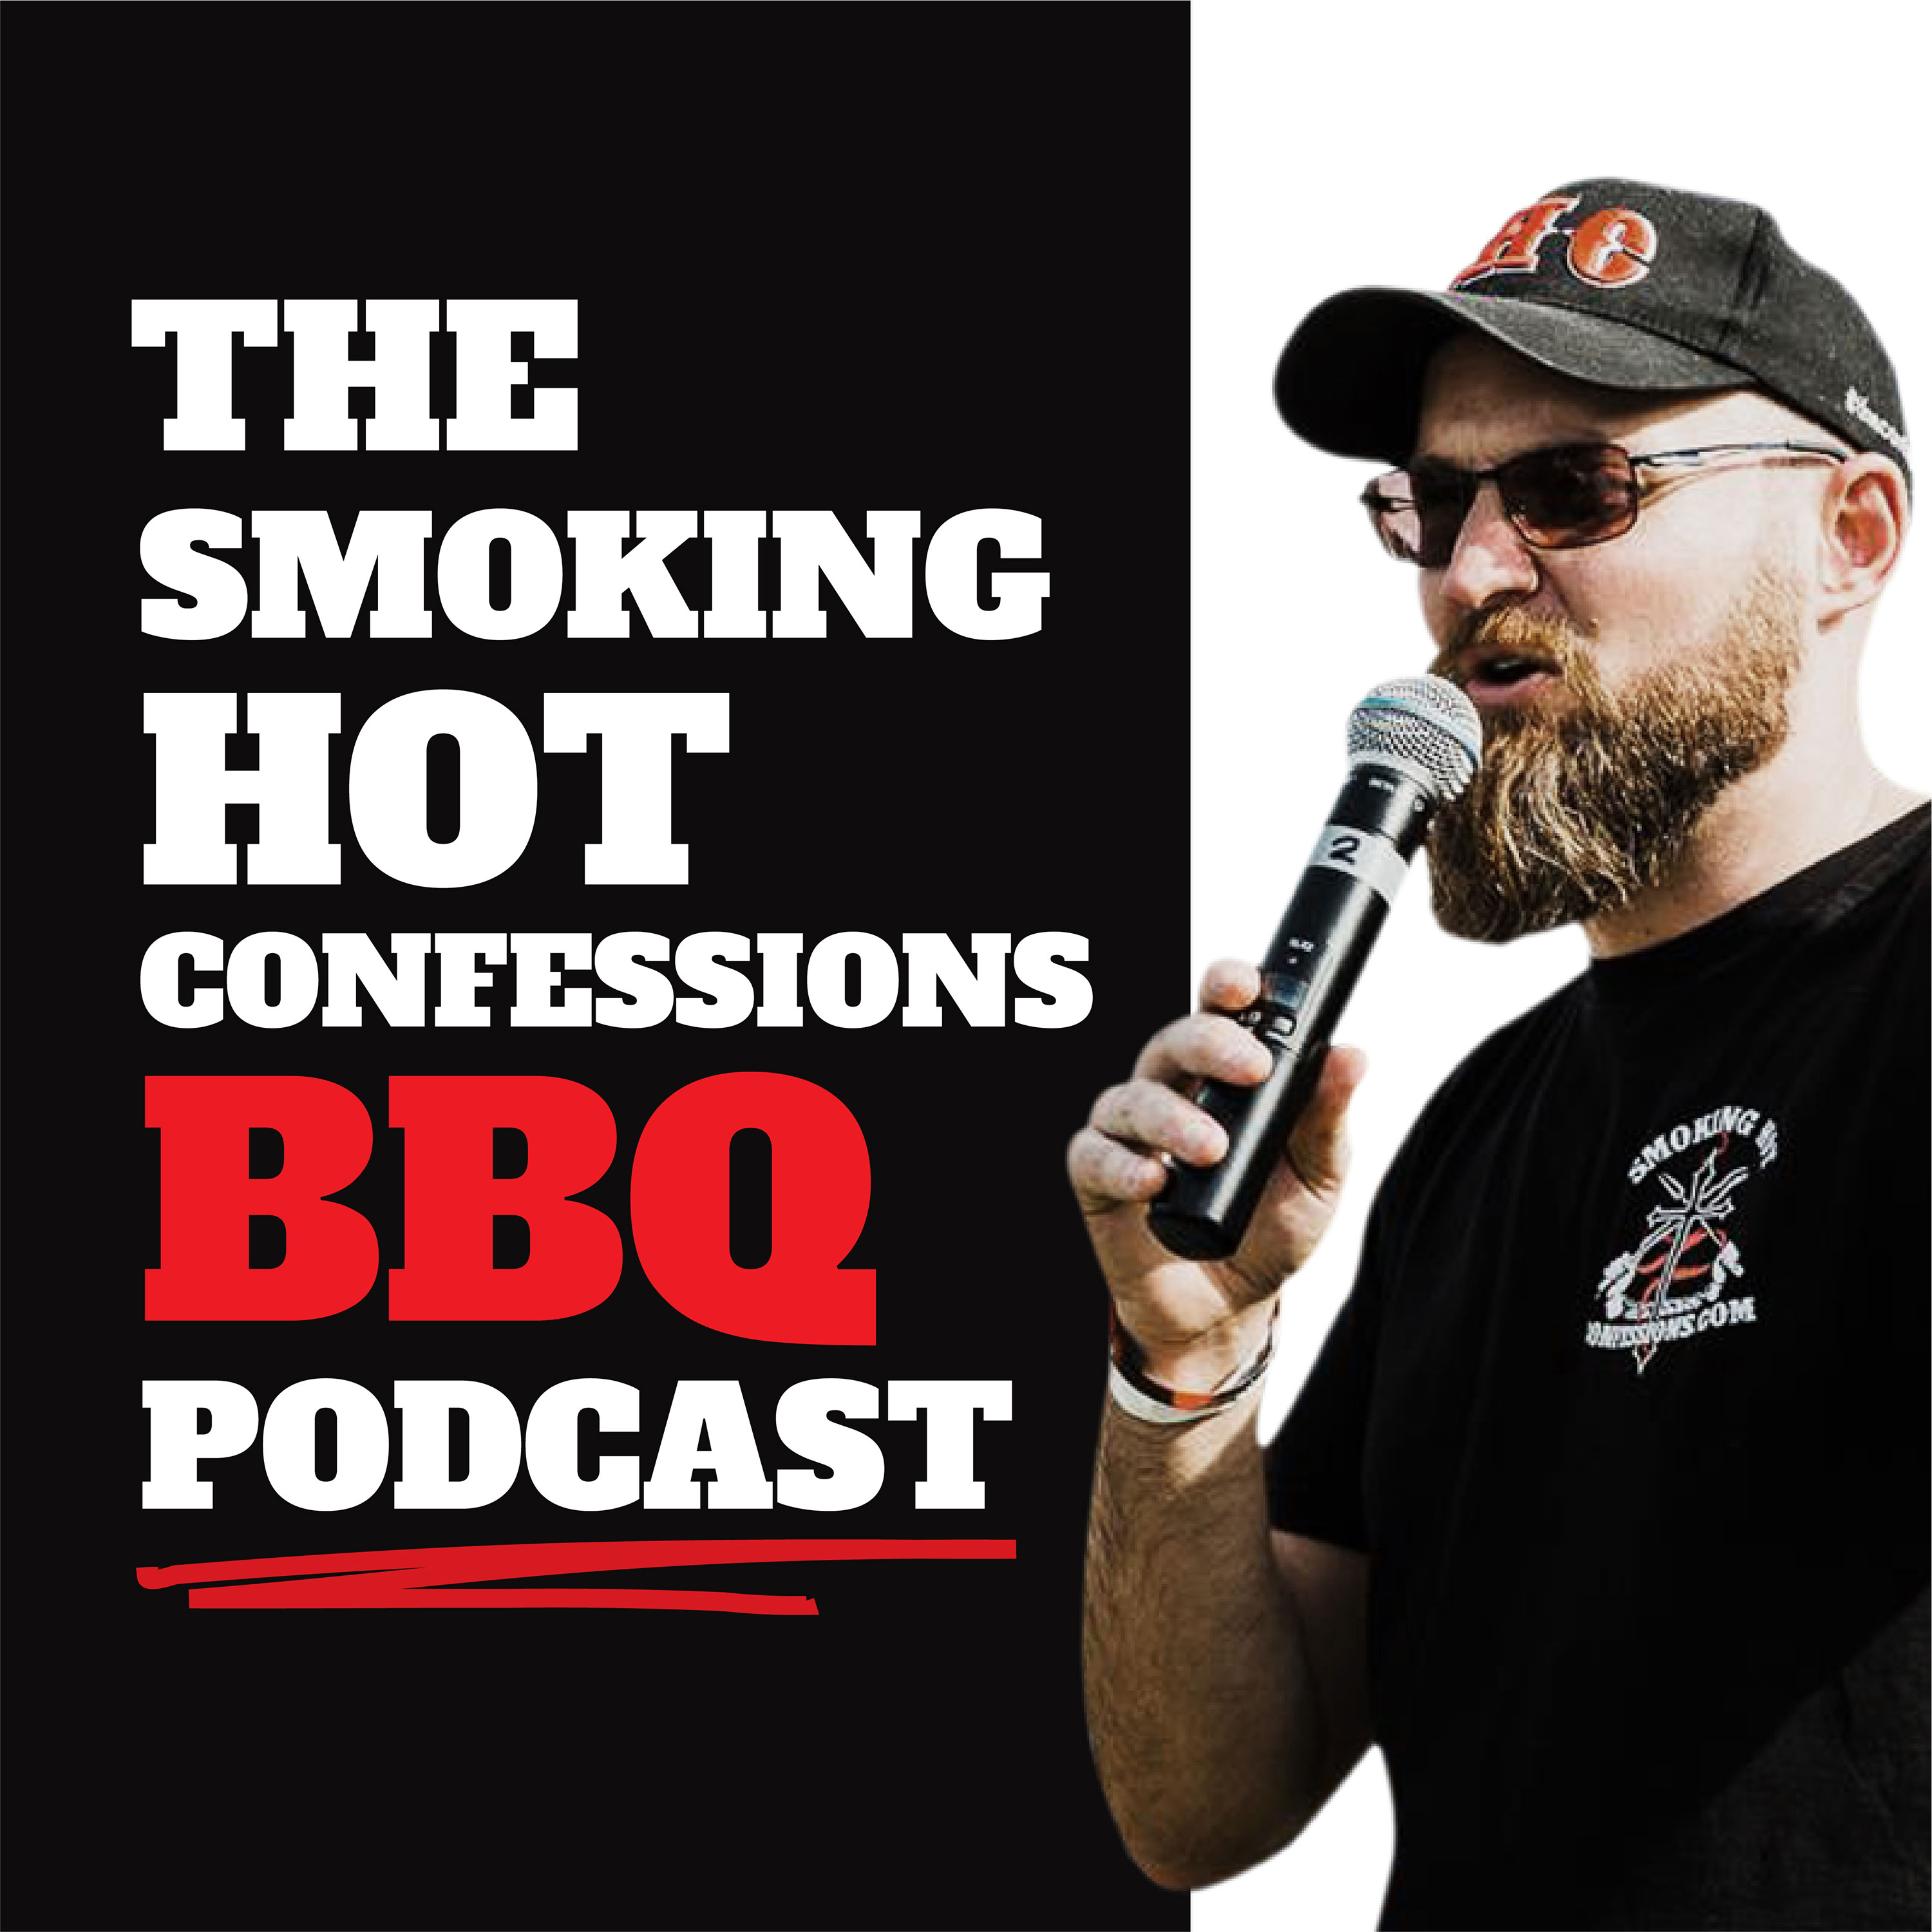 The Smoking Hot Confessions BBQ Podcast show art